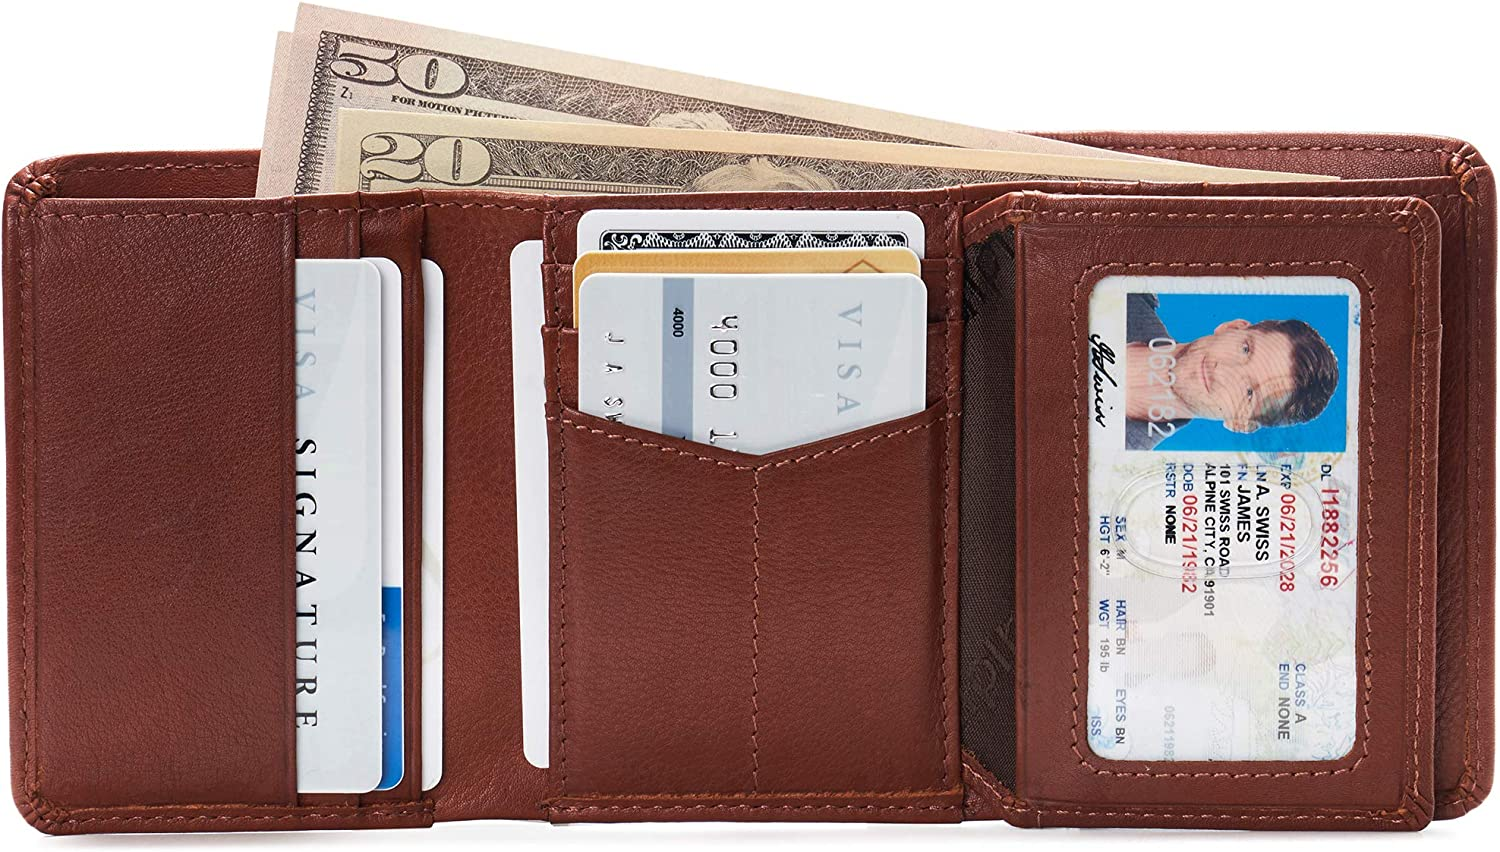 New Trifold Leather Man's wallet 9 credit card spaces 2 billfold change purse bn